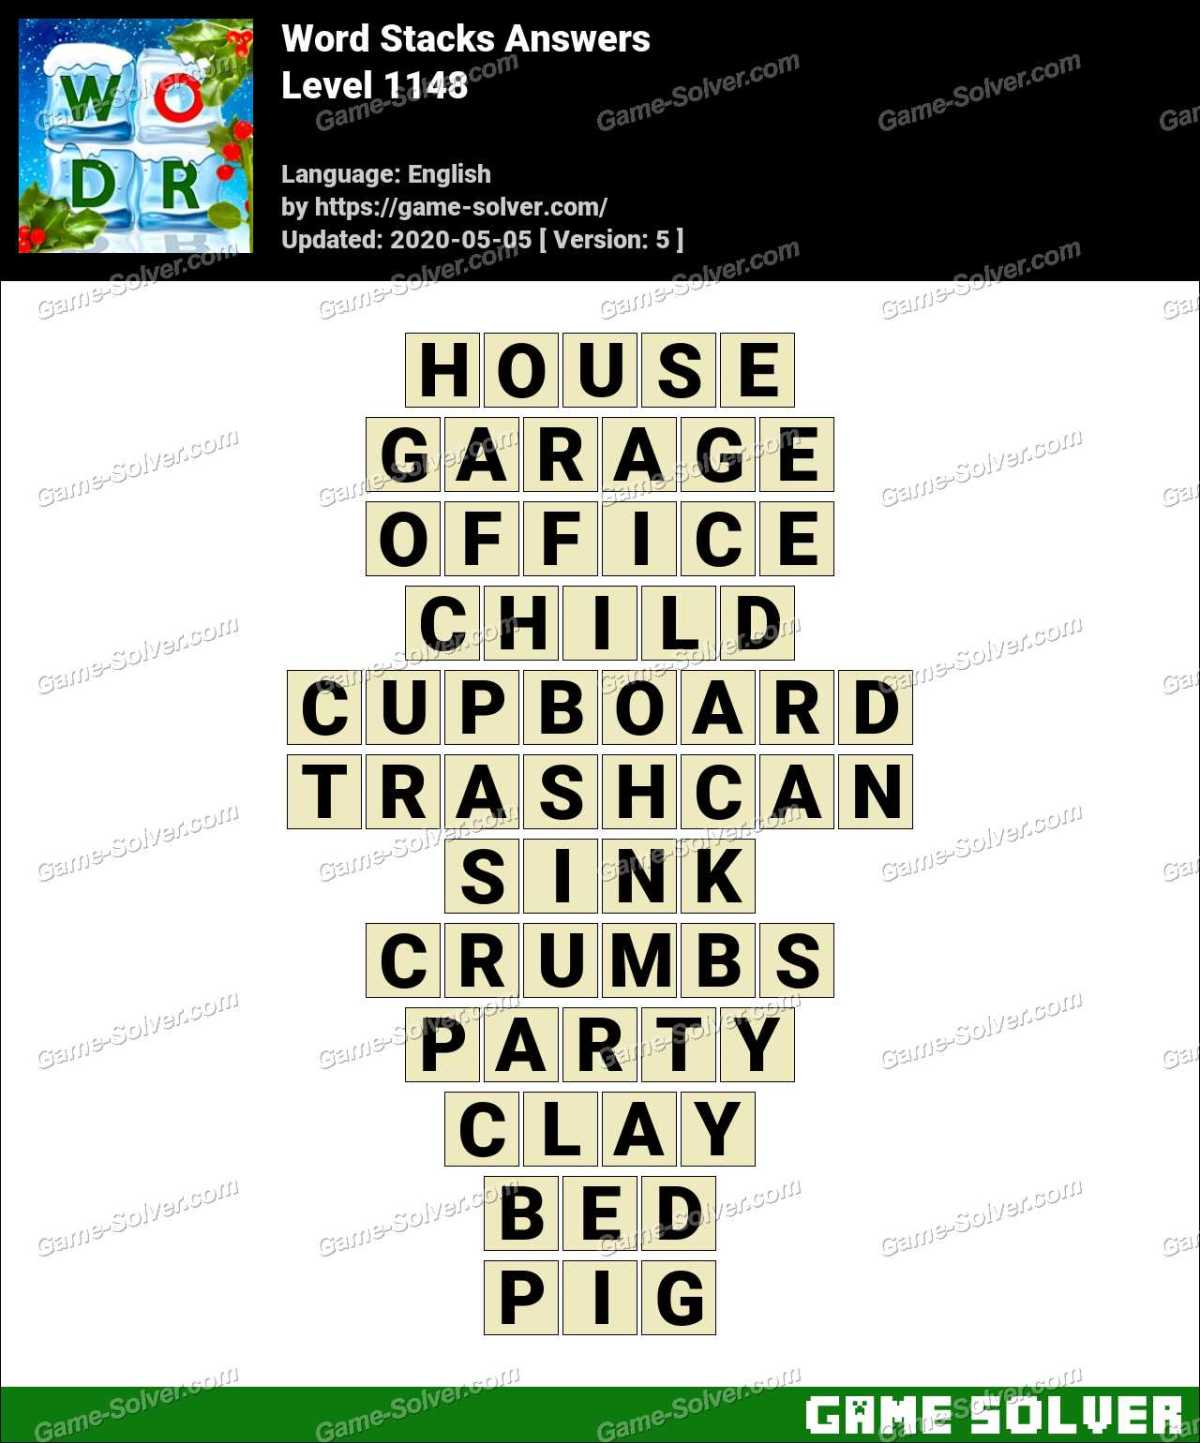 Word Stacks Level 1148 Answers